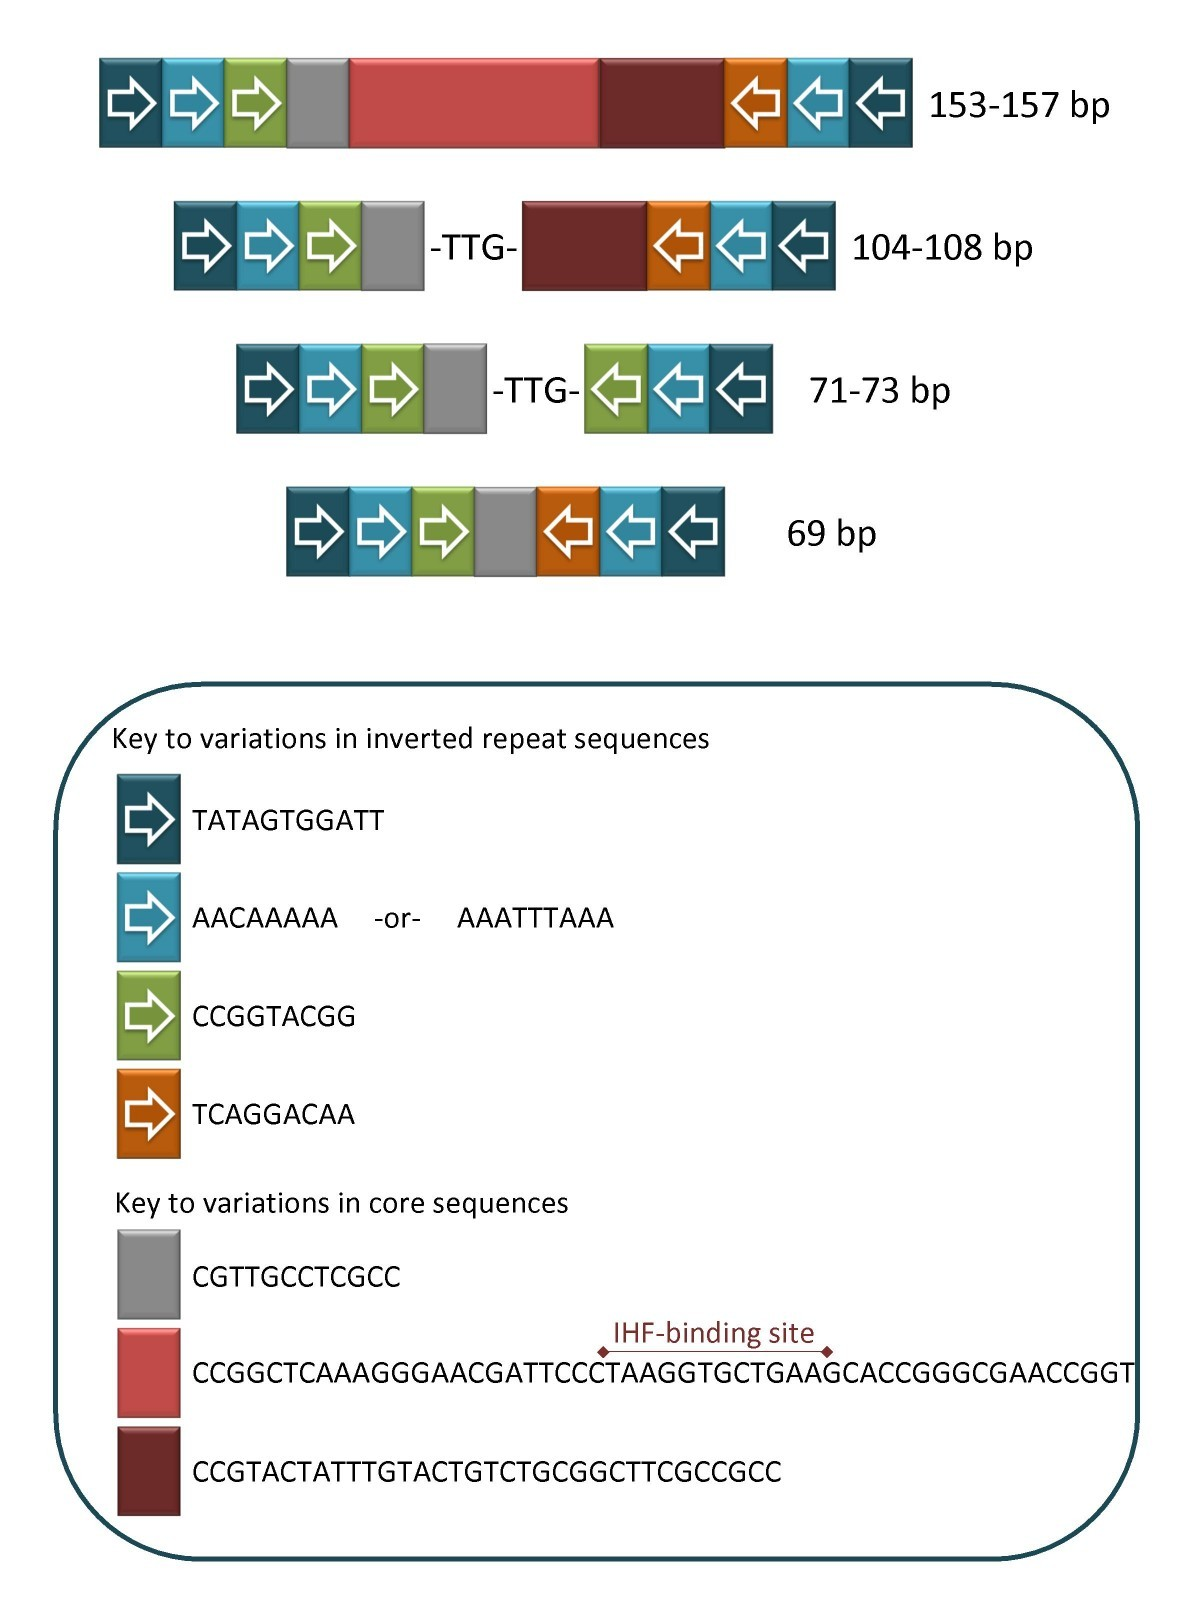 comparative analysis of two neisseria gonorrhoeae genome sequences